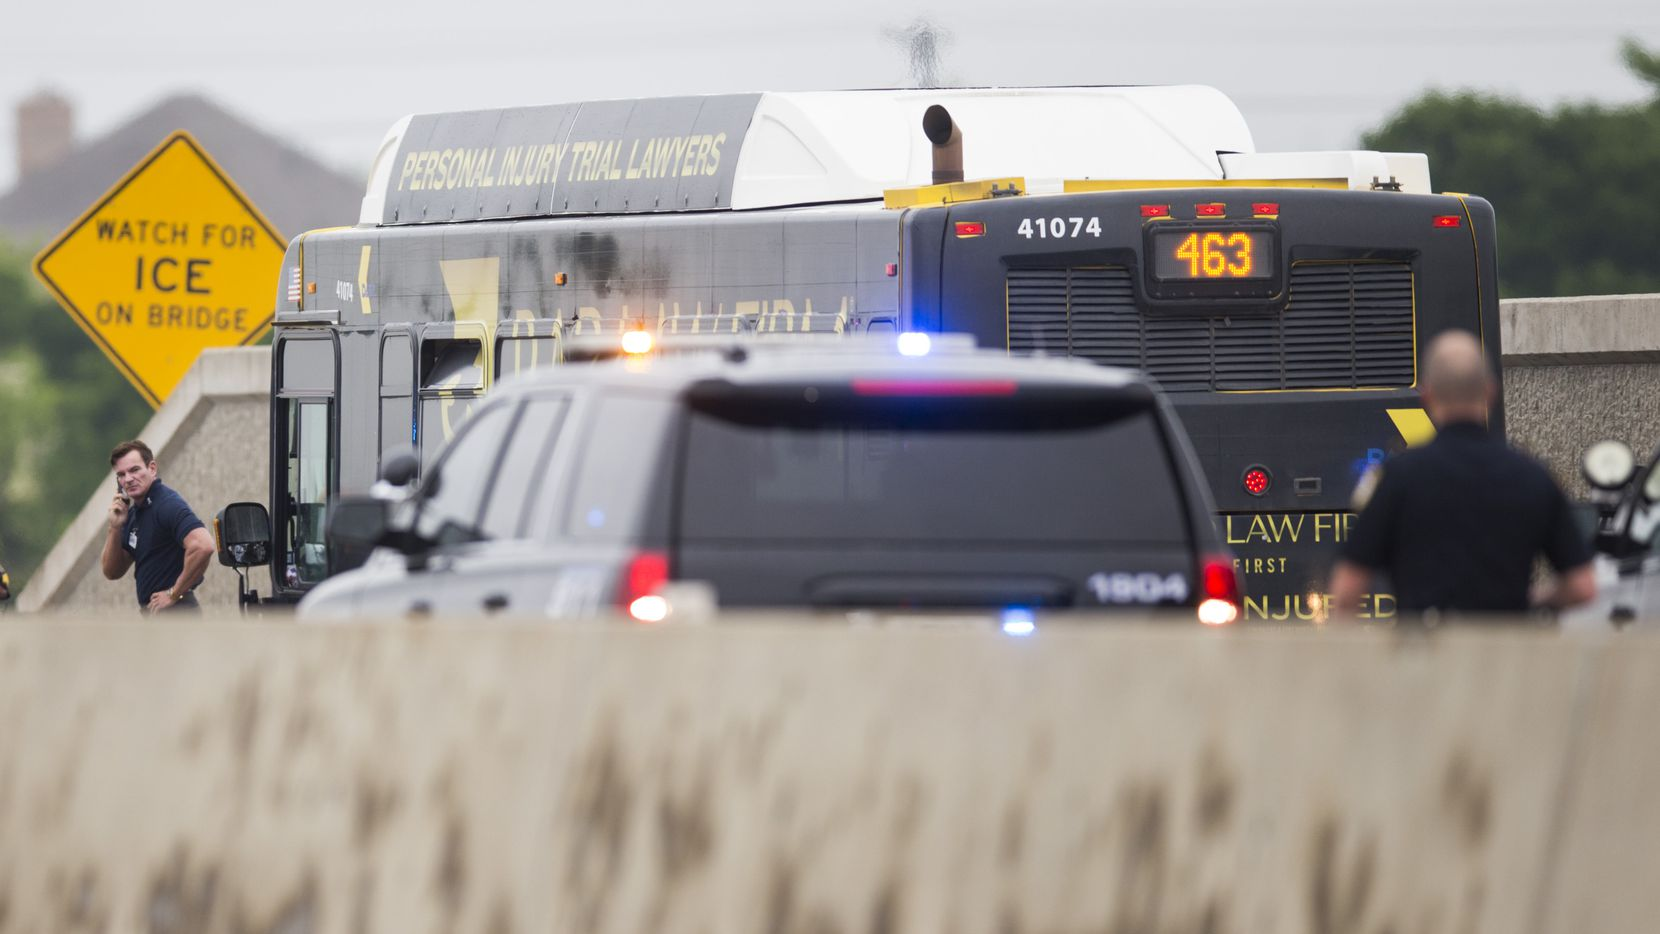 A DART bus is investigated after a gunman held the driver hostage and fired shots inside the bus while being chased by police.